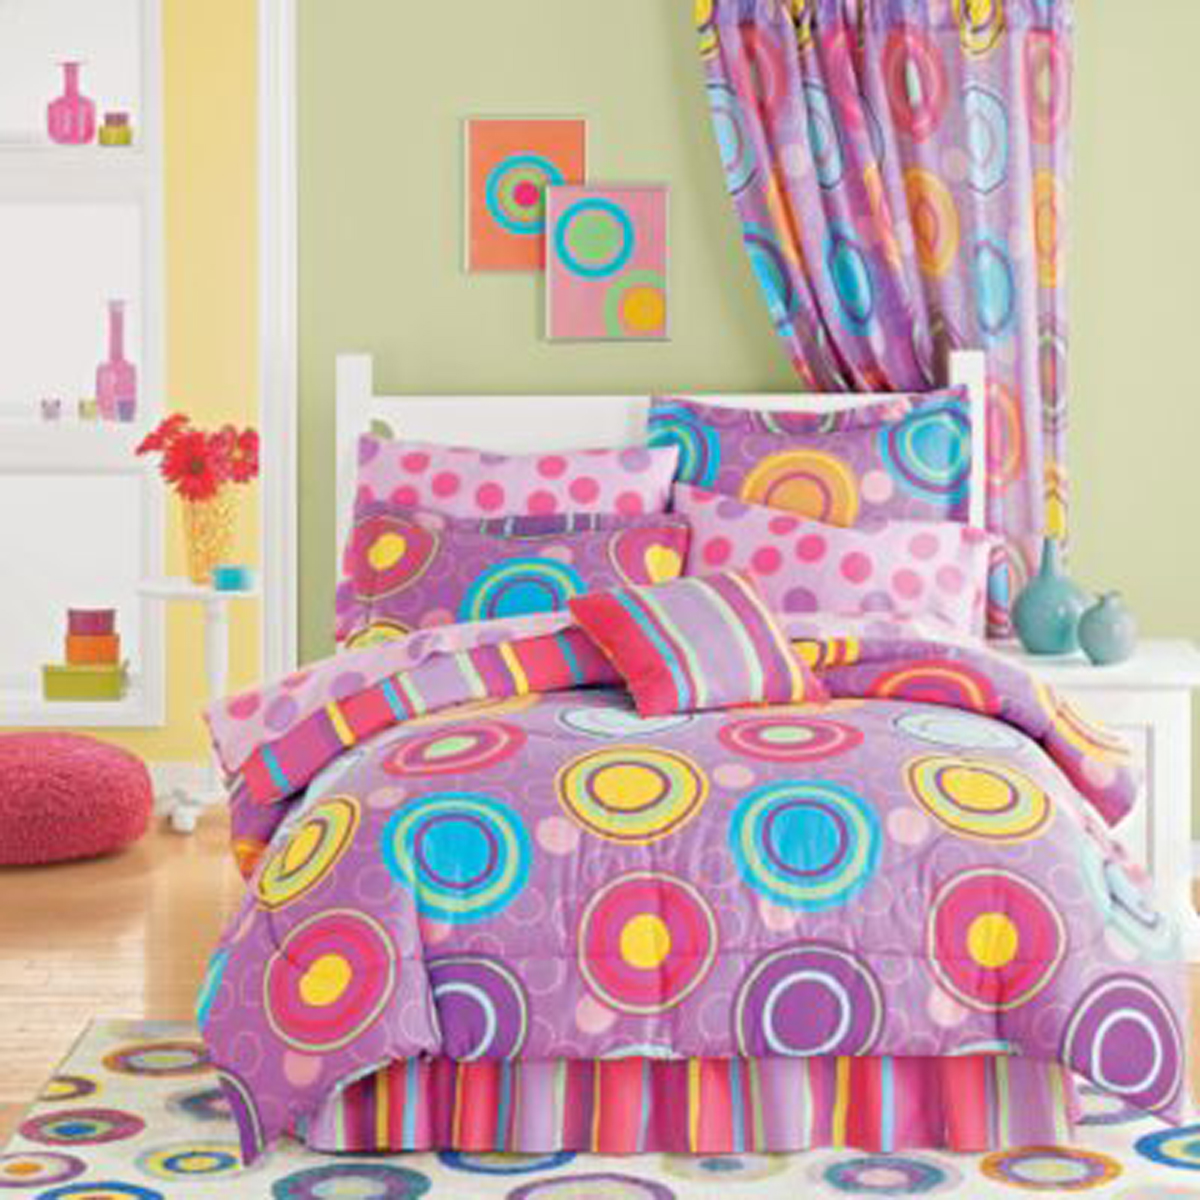 kids room decorating ideas photograph kids room decorating